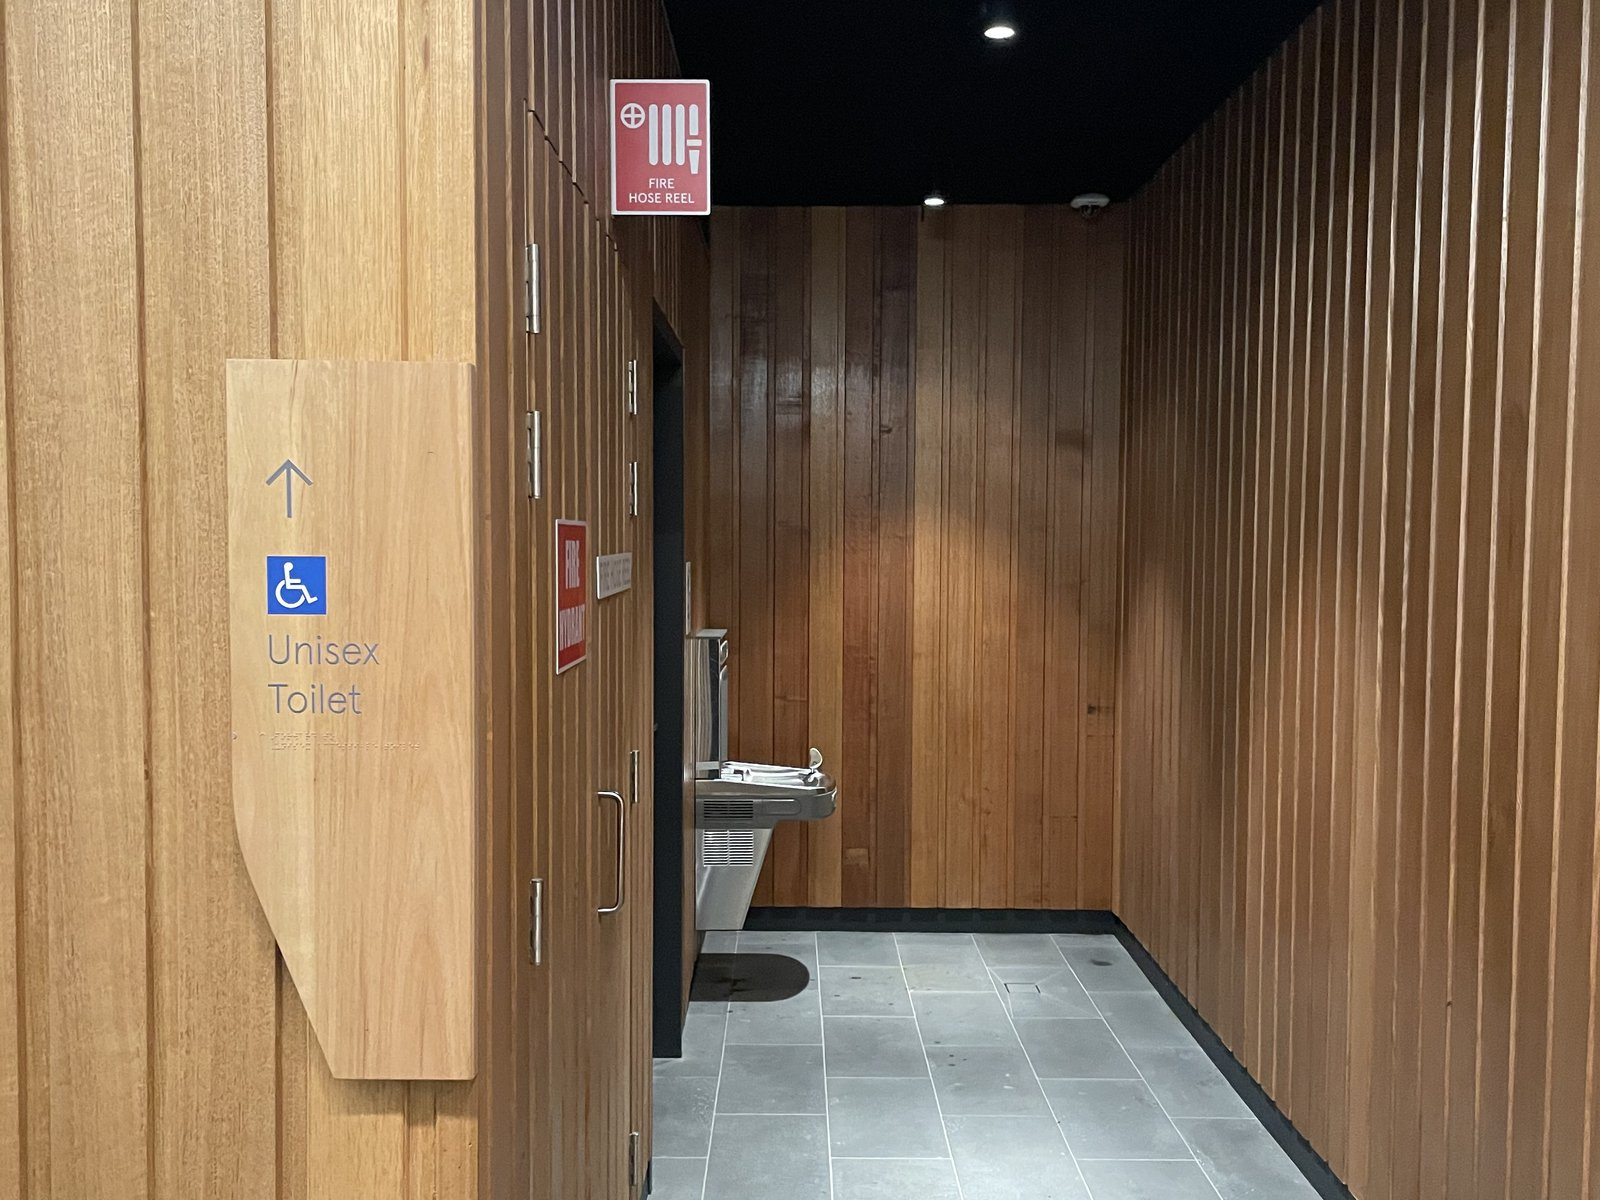 AM accessible toilets